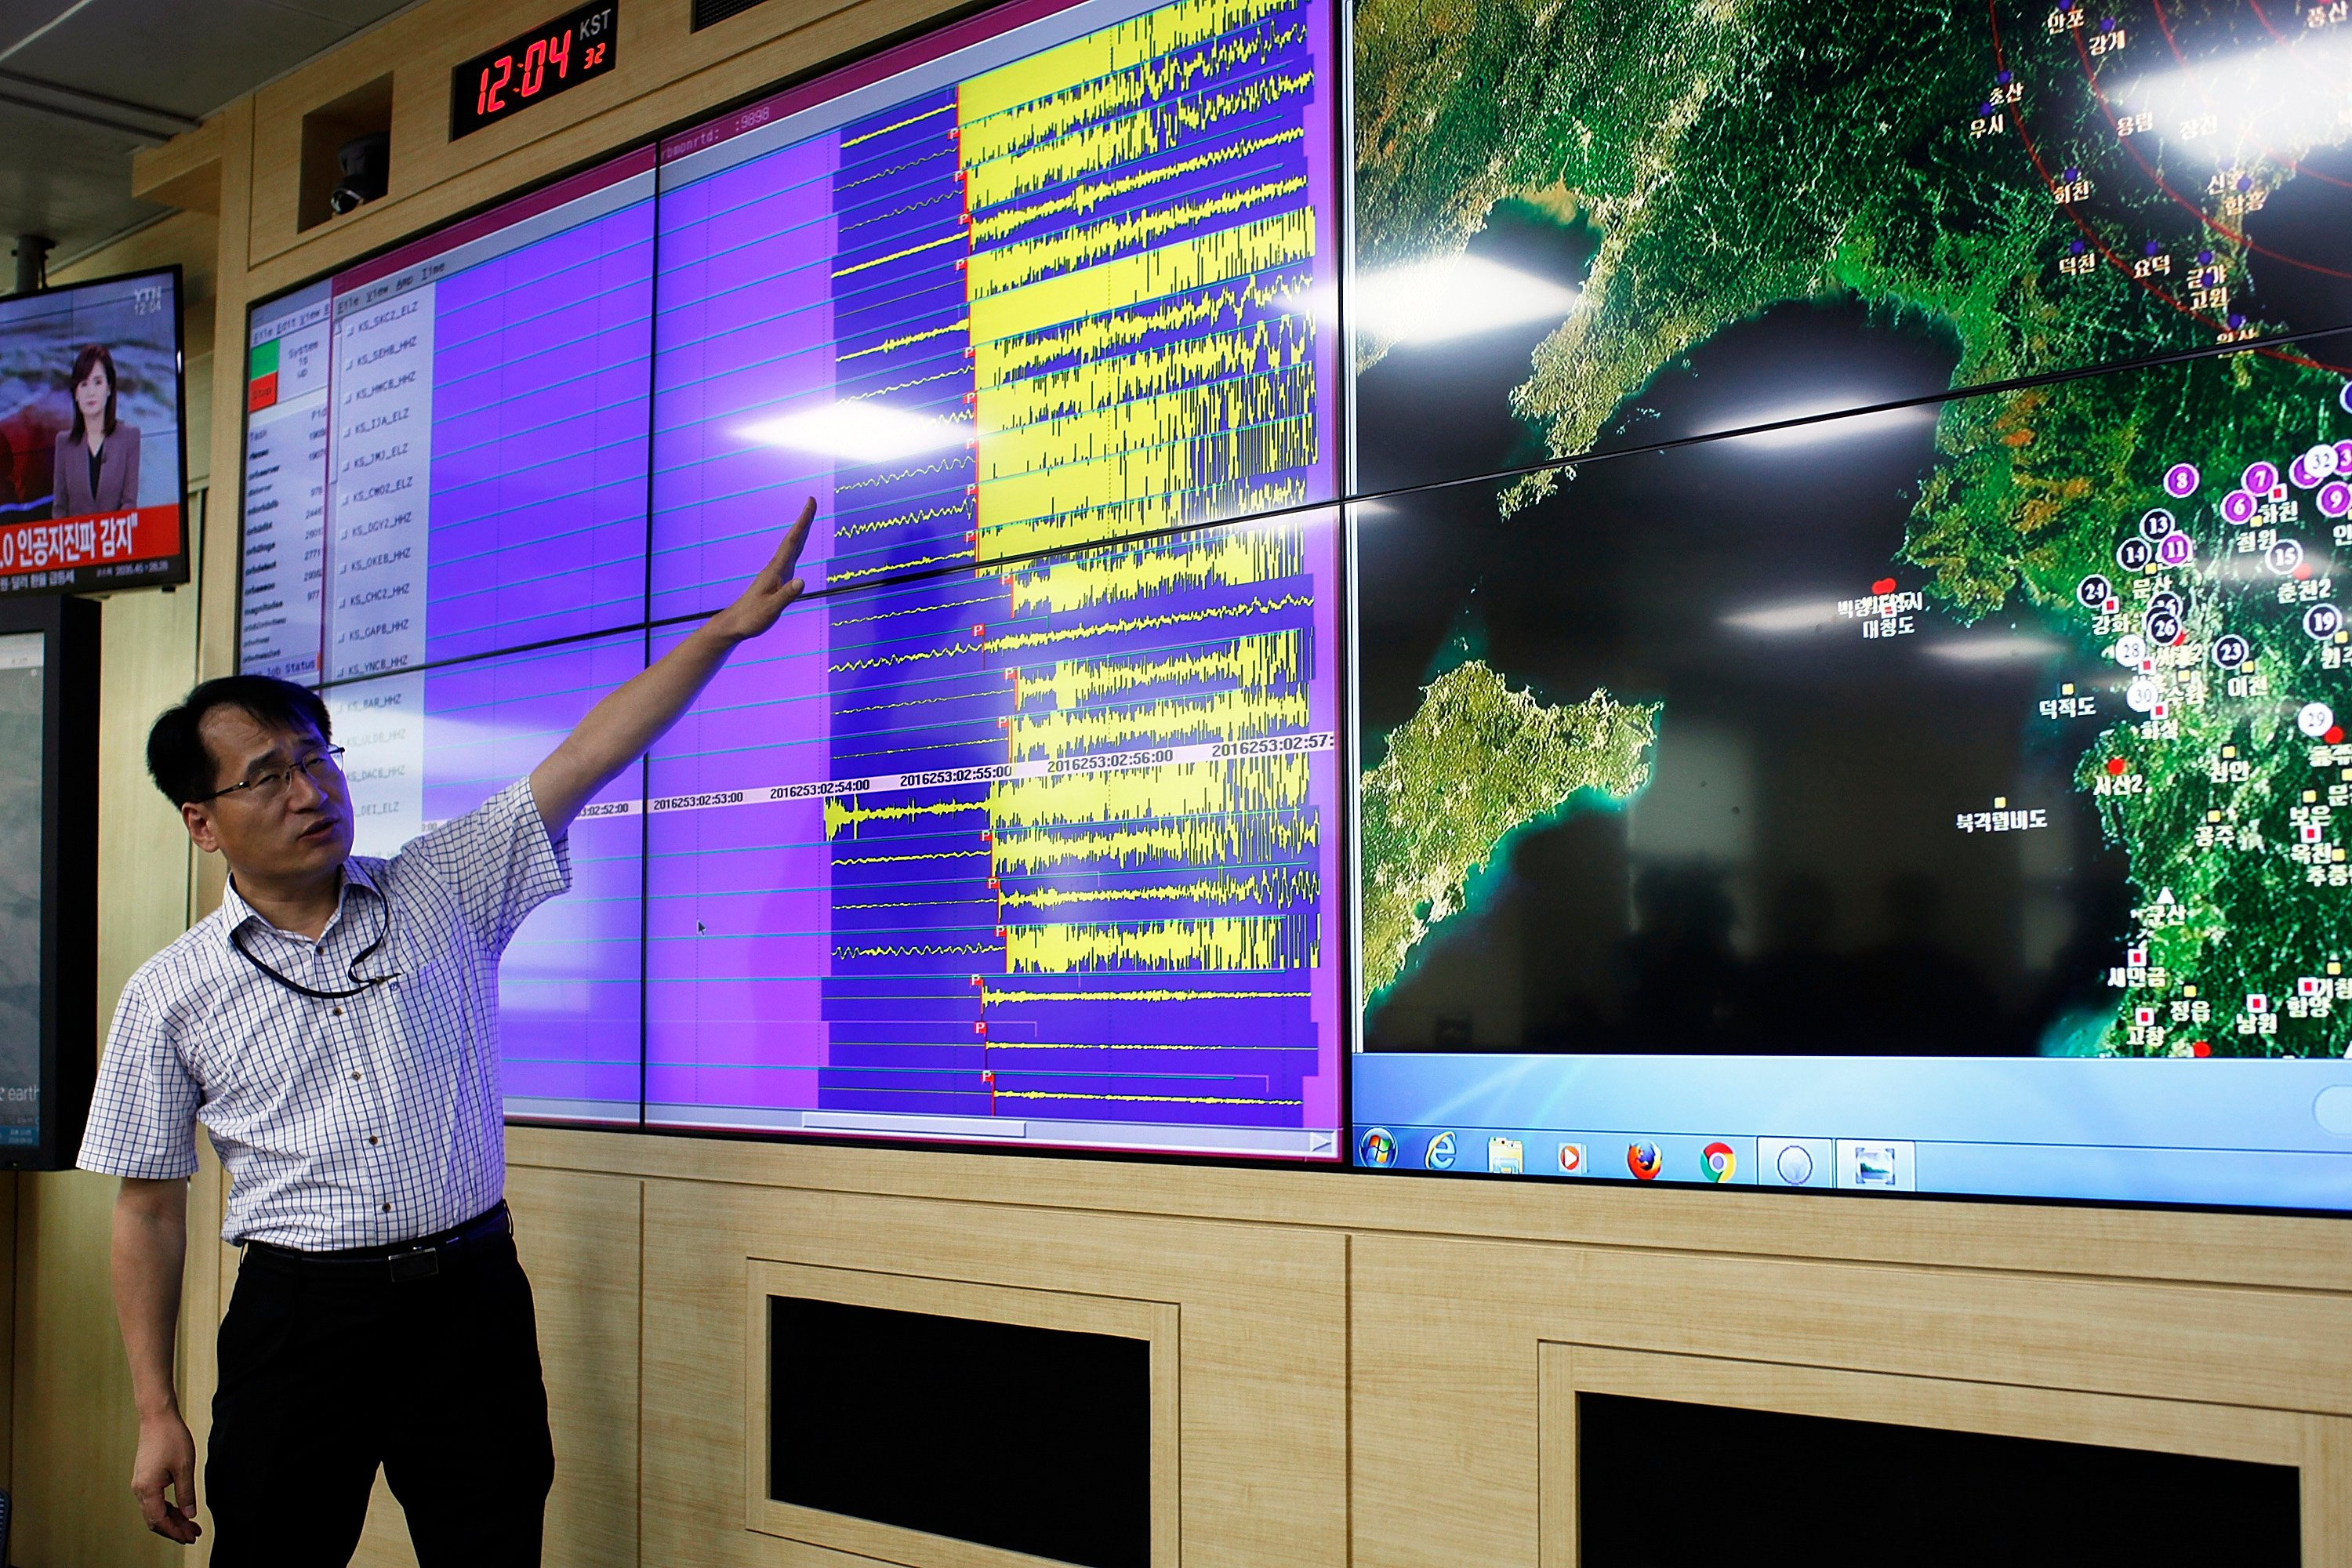 Researchers in South Korea check the seismic waves caused by a North Korean underground nuclear explosion September 9, which resulted in a magnitude 5.1 earthquake at the test site. (Photo credit: Woohae Cho/Getty Images)